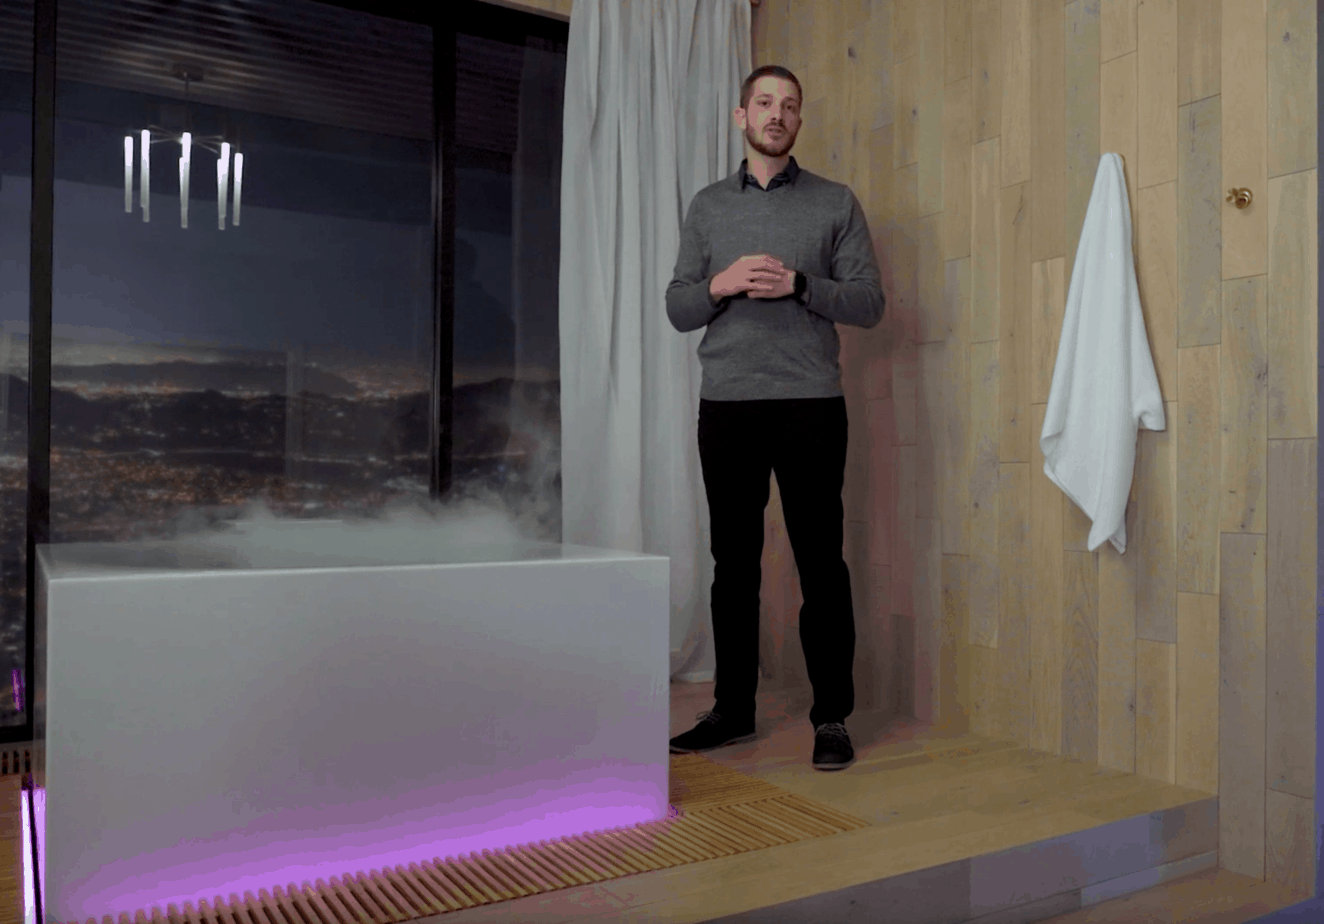 The Kohler Escape Bathroom provides a spa experience at home with lighting, fog and aromatherapy options.